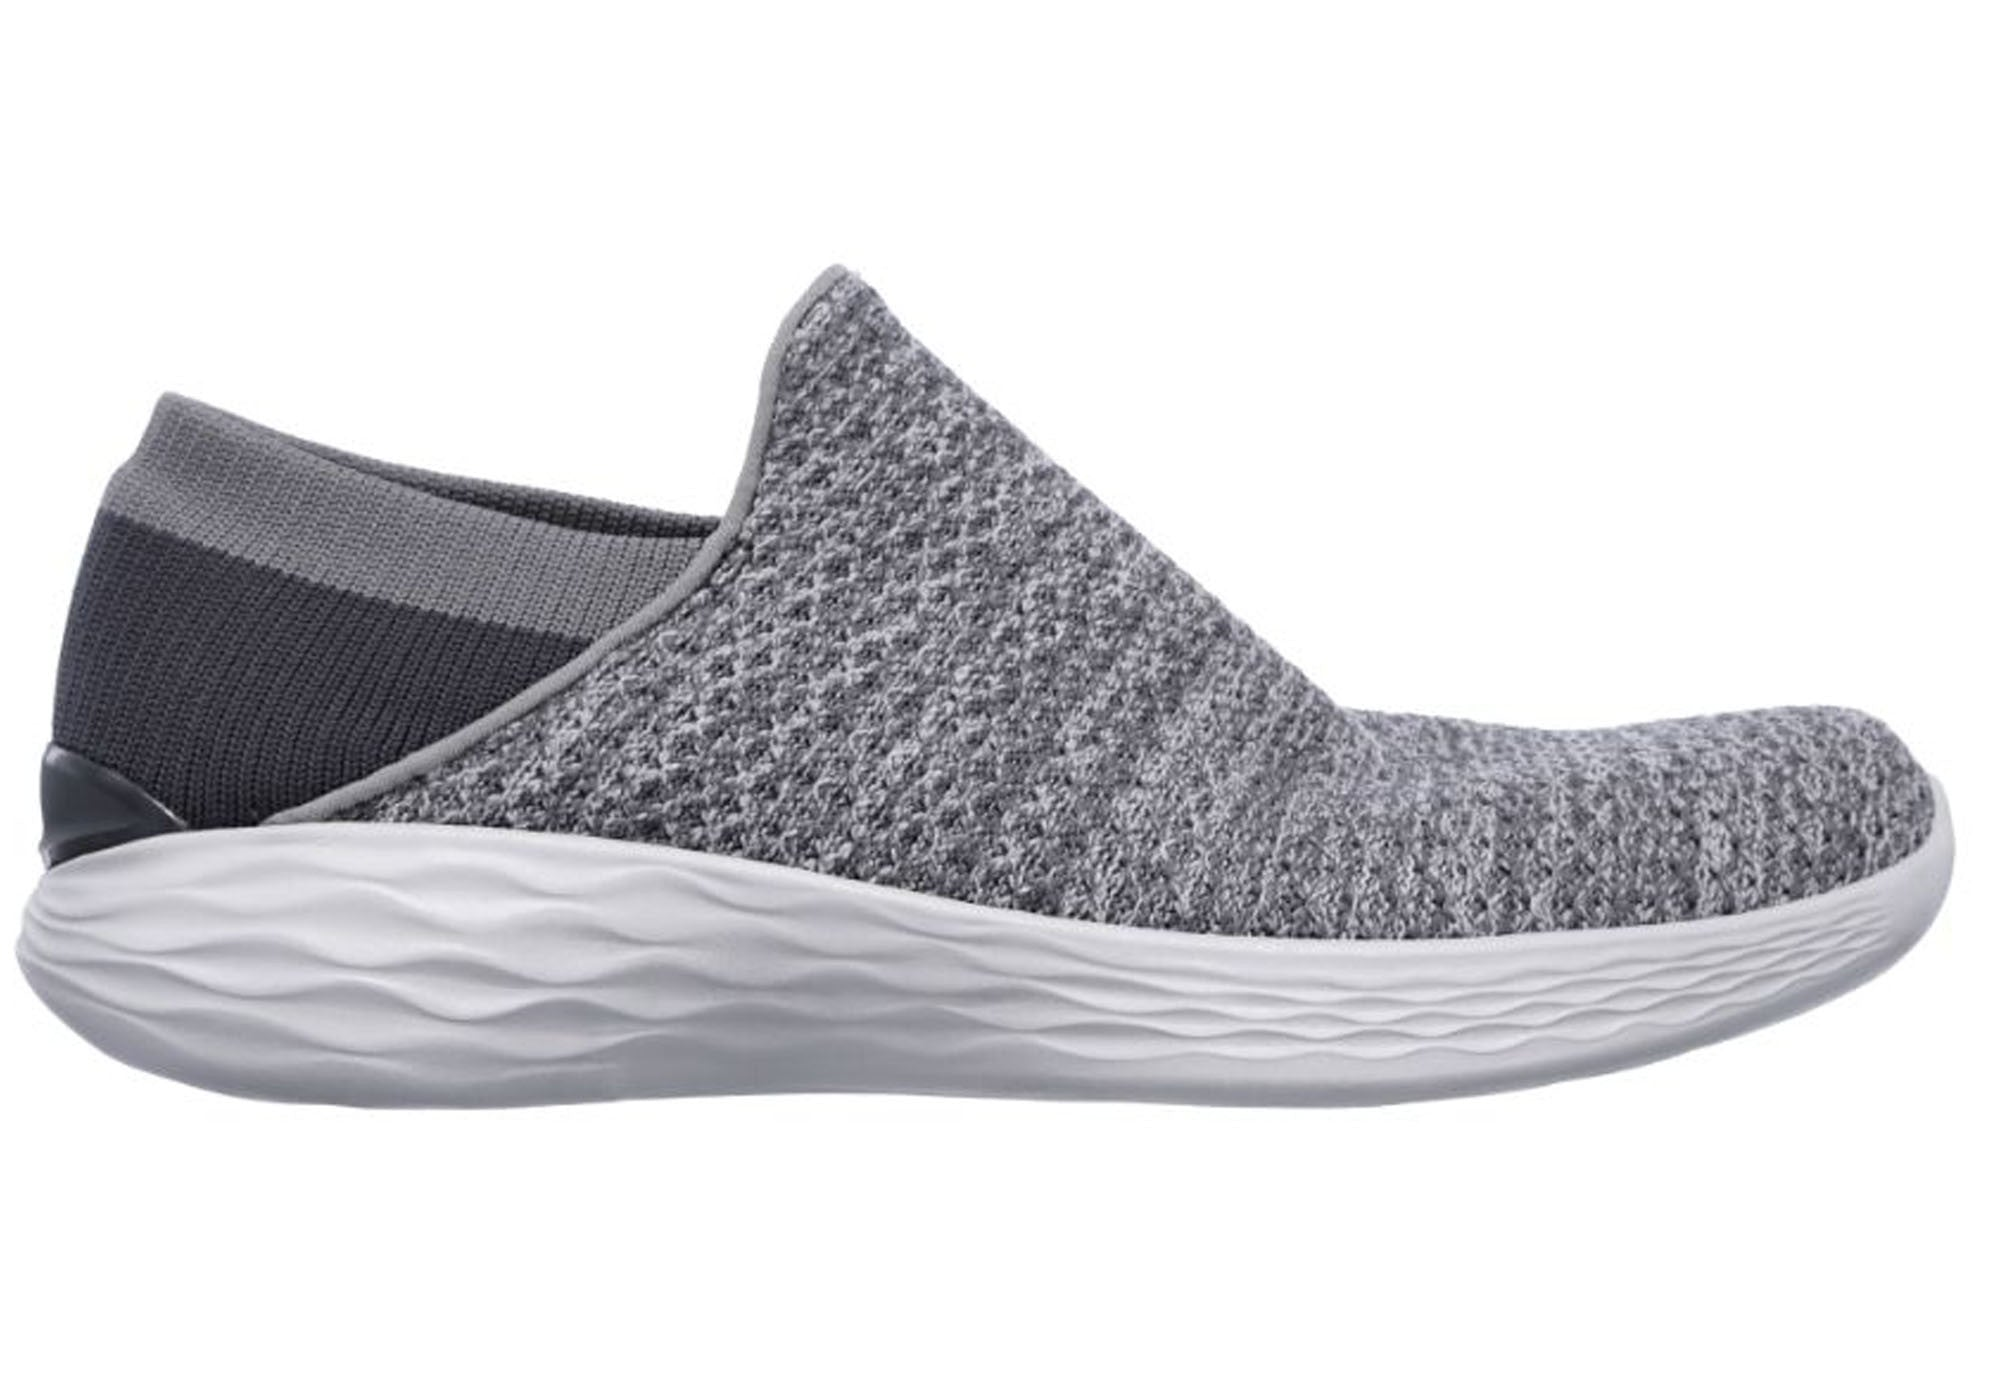 NEW-SKECHERS-YOU-WOMENS-COMFORTABLE-LIGHTWEIGHT-SLIP-ON-SHOES